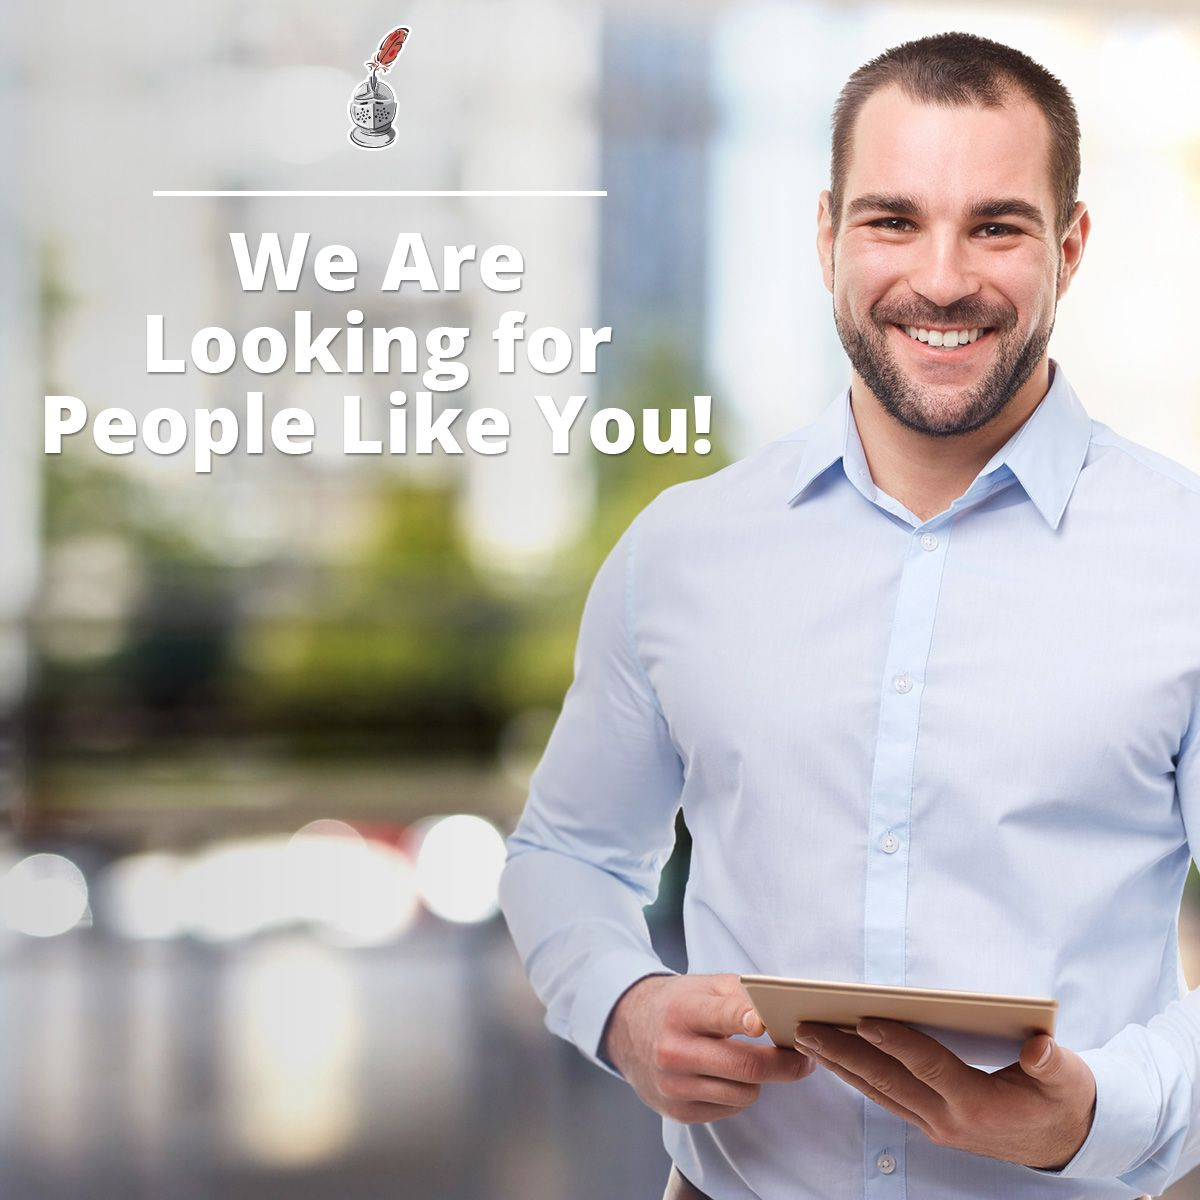 We Are Looking for People Like You!